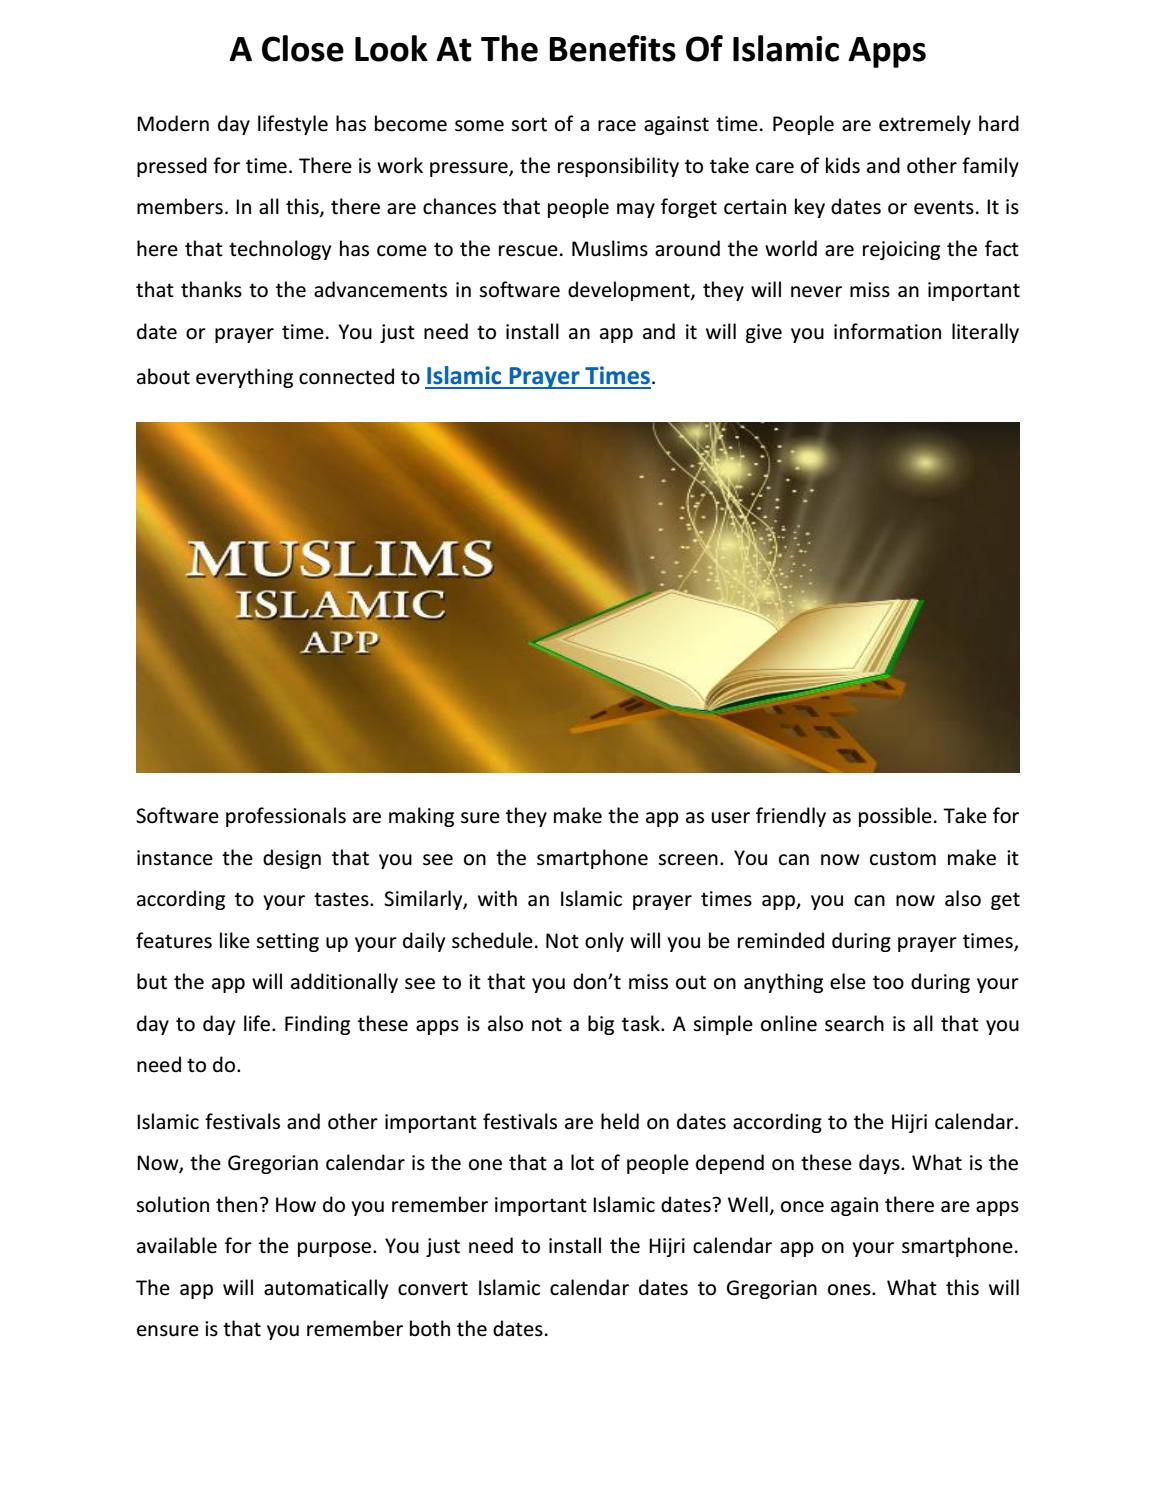 A Close Look At The Benefits Of Islamic Apps by Aasim khan